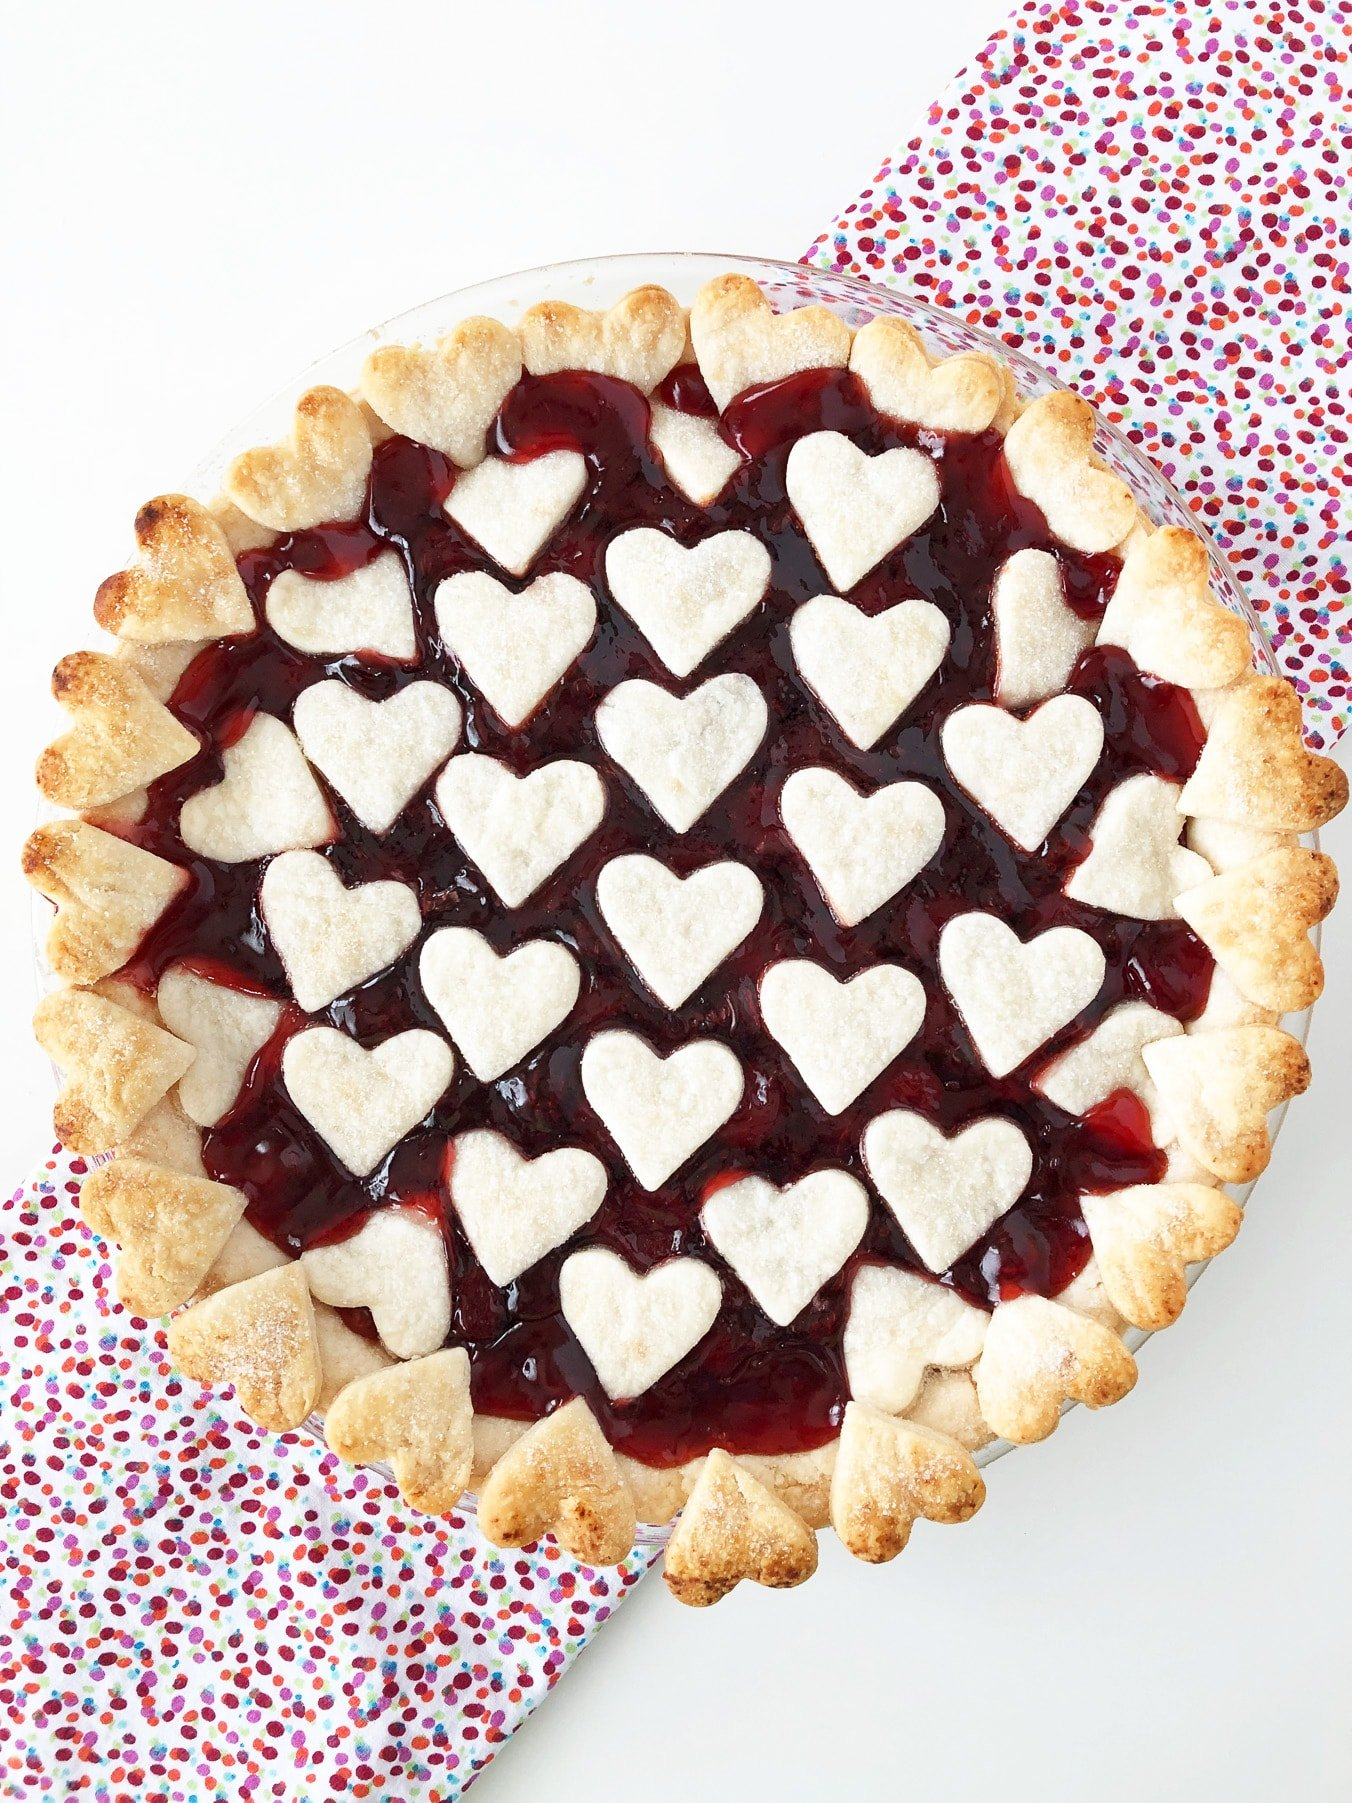 Cherry Pie for Valentine's Day